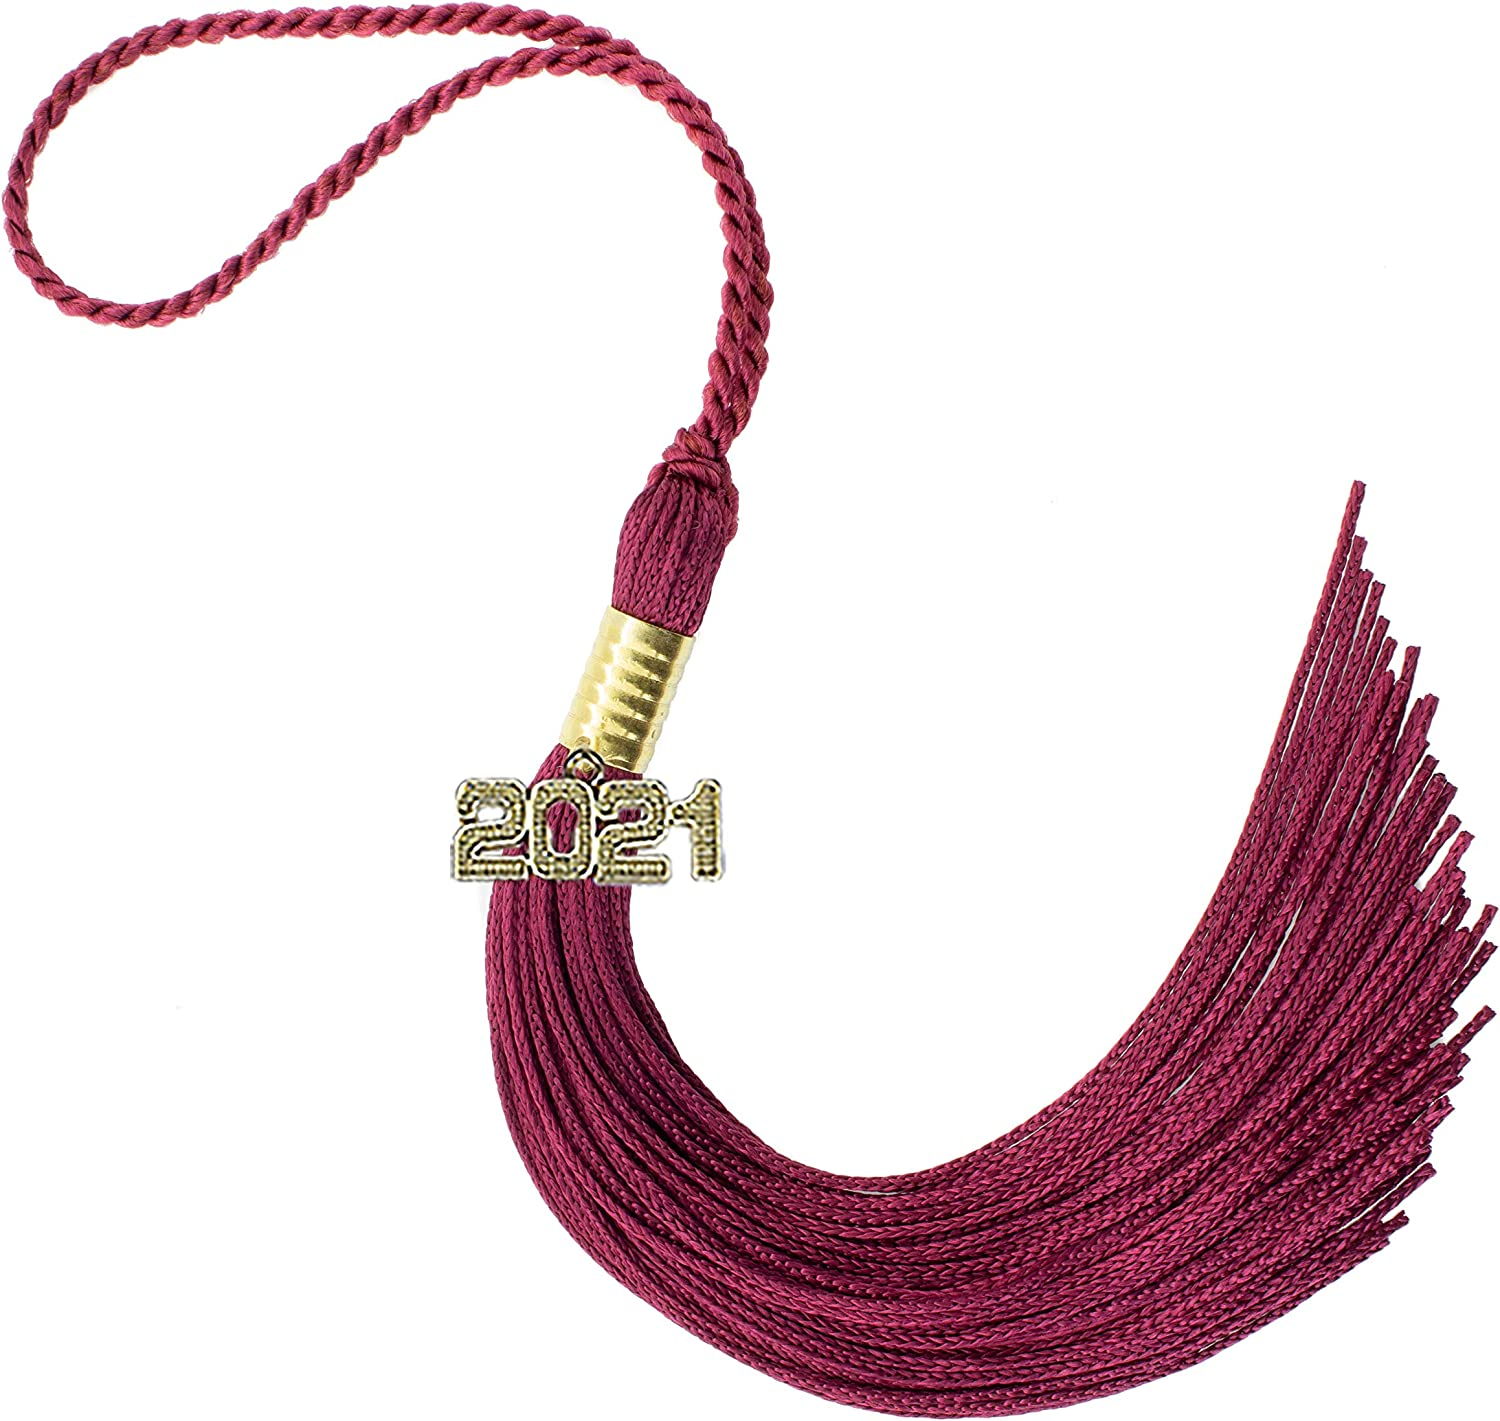 Amazon.com: 2021 Maroon Graduation Tassel - Every School Color Available  -Made in USA: Home & Kitchen